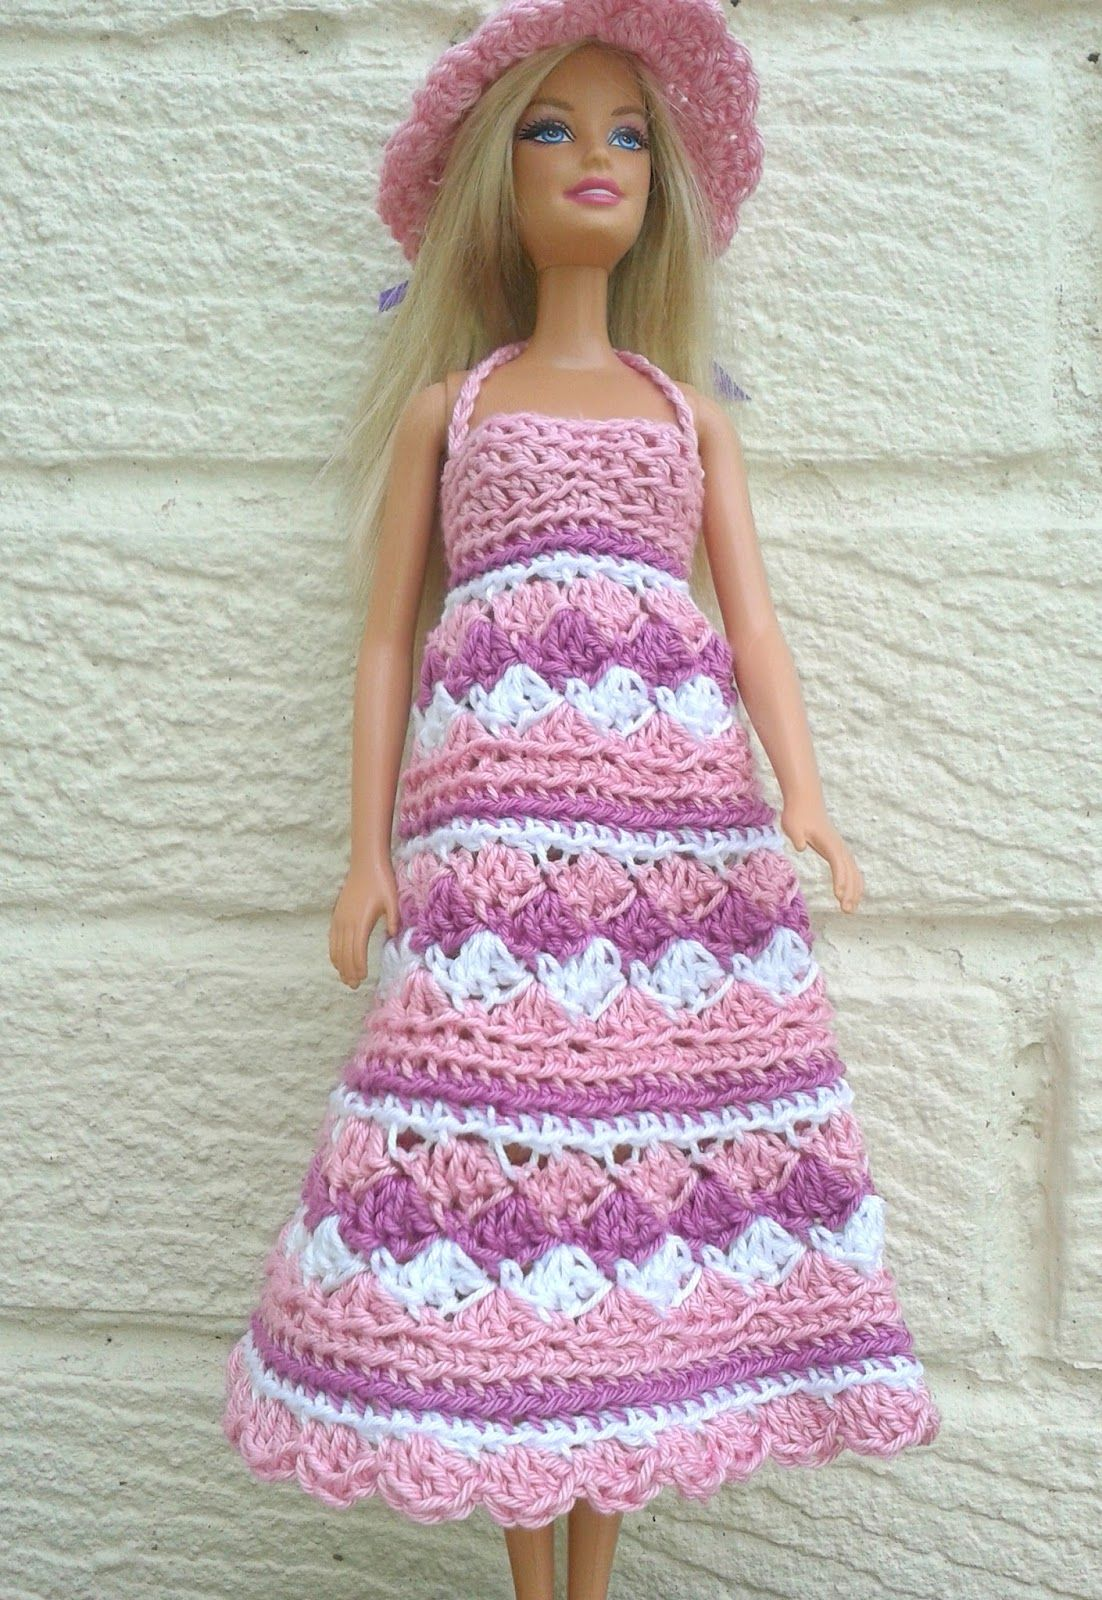 The pattern is for a dress for barbie worked in continuous rounds crochet doll clothes the pattern is for a dress for barbie worked in continuous rounds from the top down bankloansurffo Choice Image